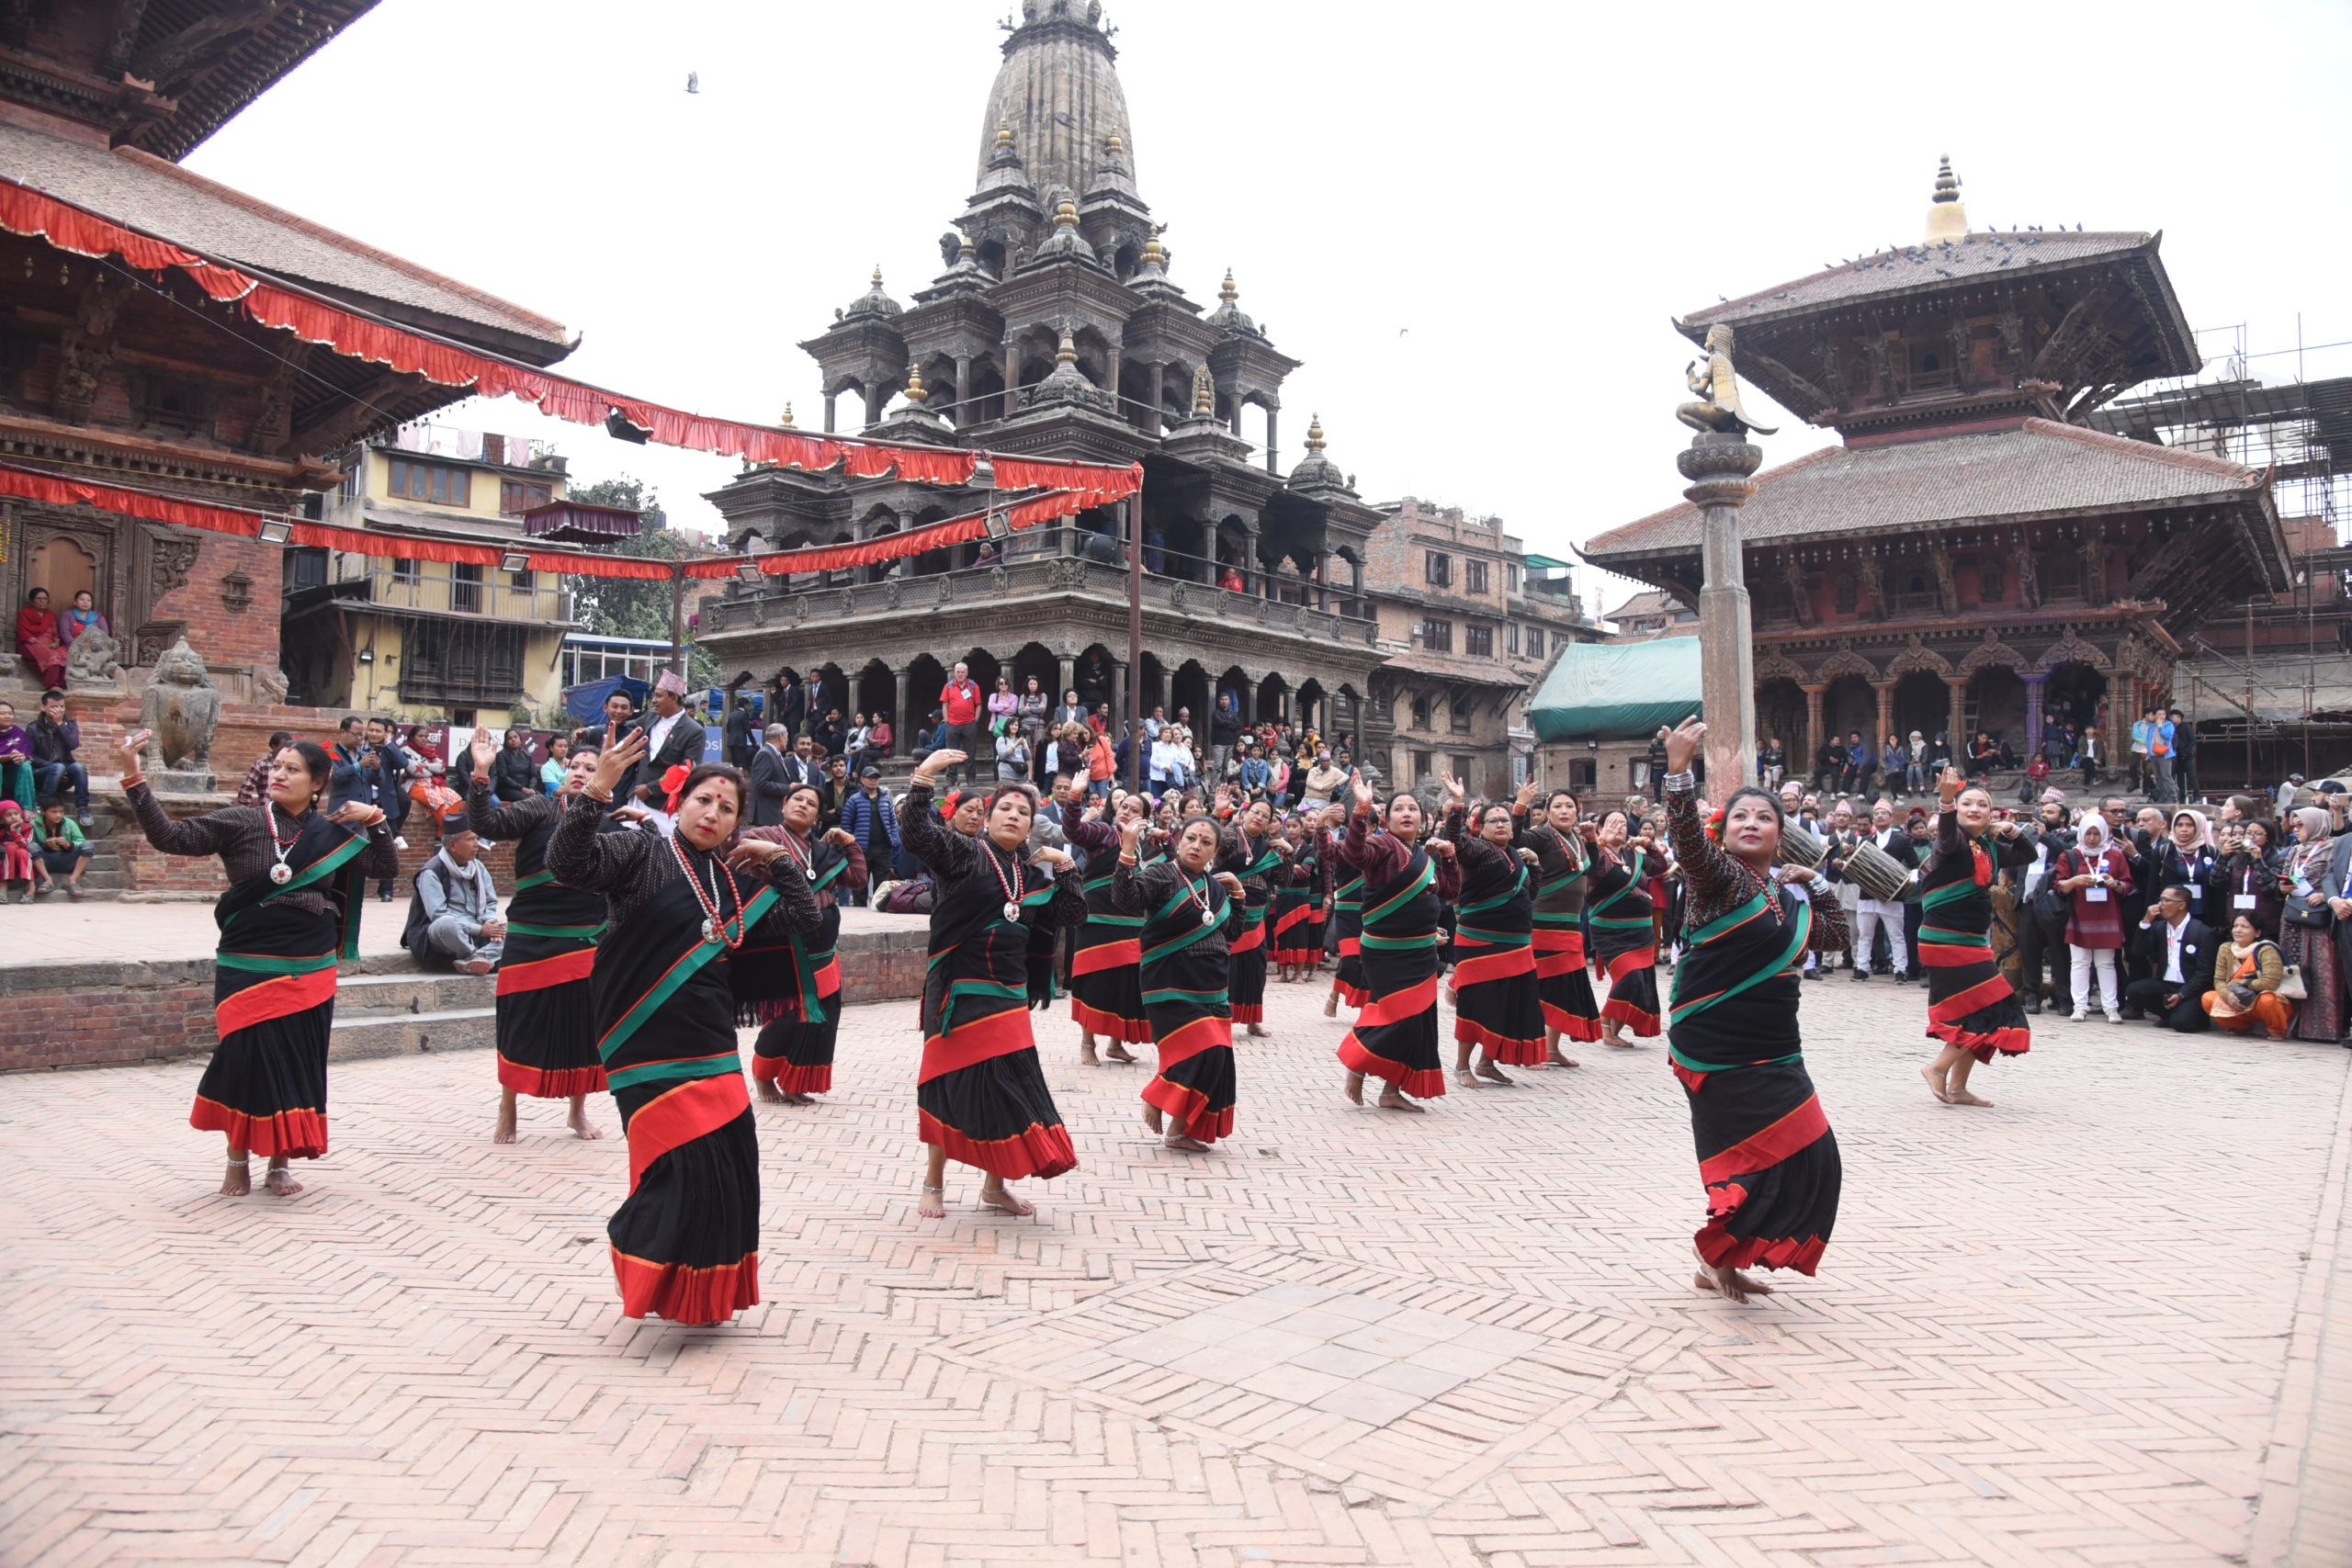 CityNet and Lalitpur gather Asian local authorities to share their experiences on Heritage and Sustainable Tourism